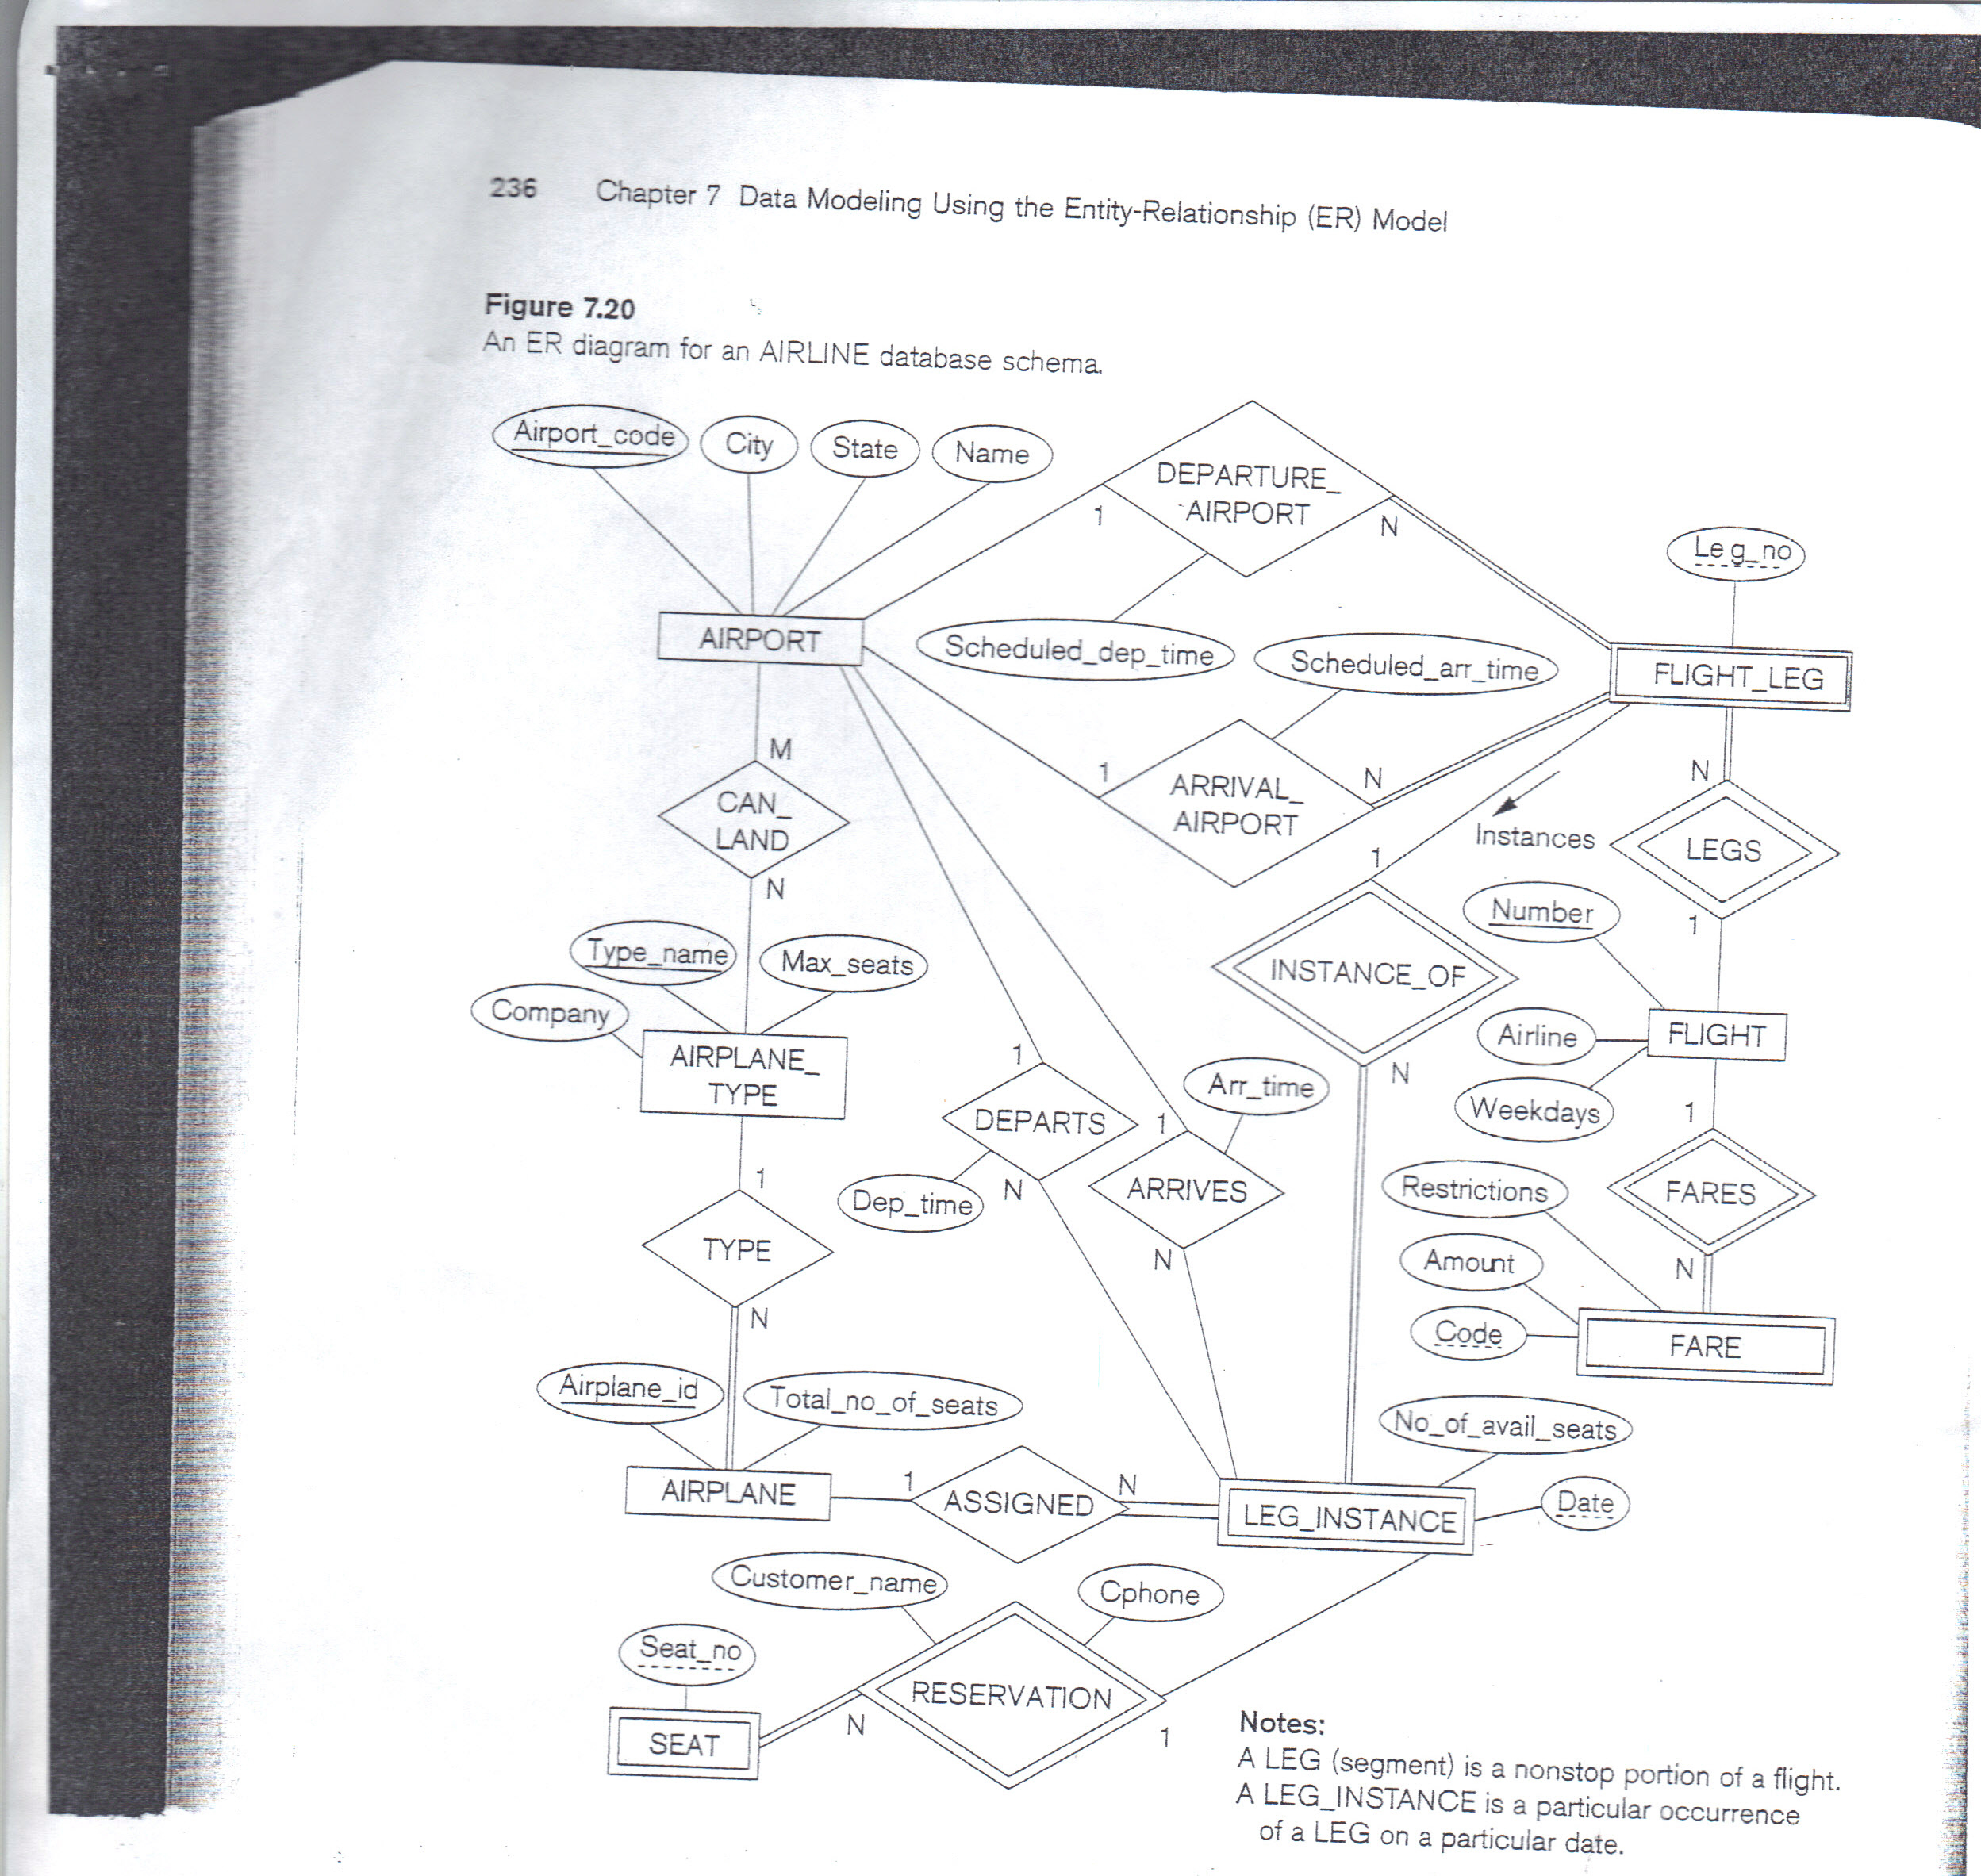 Convert The Attached Er Diagram To Its Relational pertaining to Er Diagram Chegg